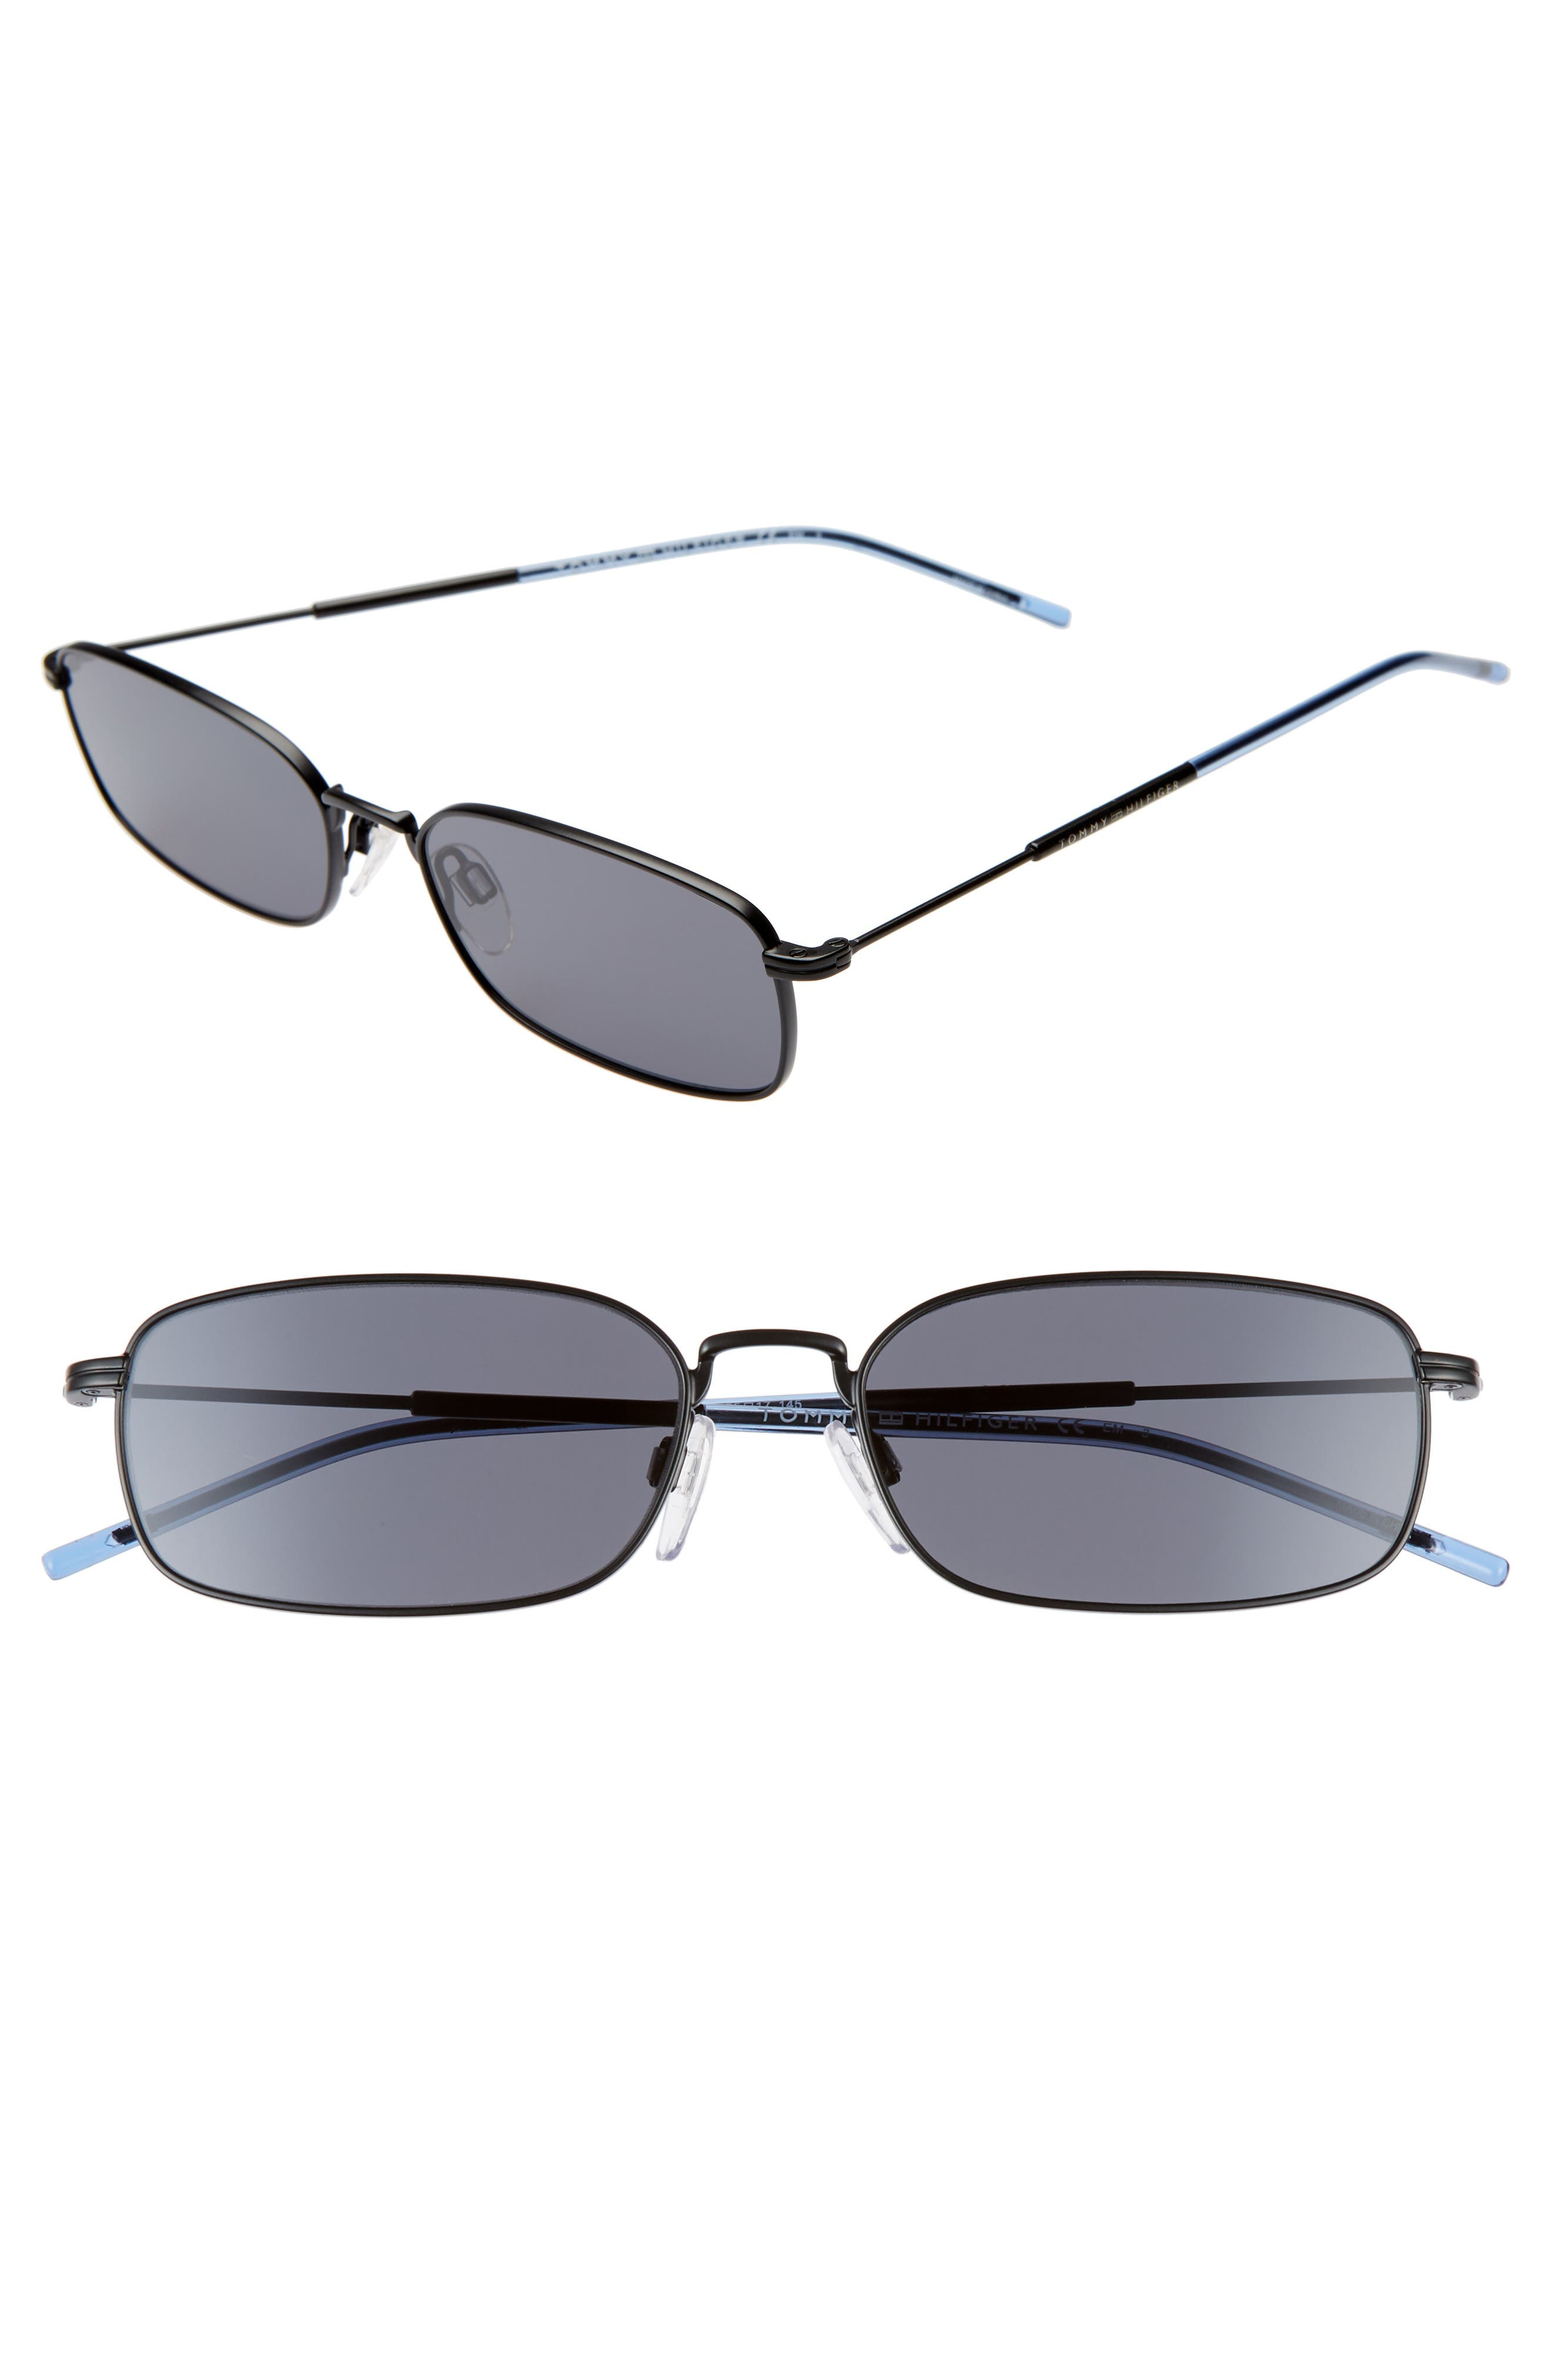 TOMMY HILFIGER, 55mm Rectangle Sunglasses, Main thumbnail 1, color, MATTE BLACK/ BLACK